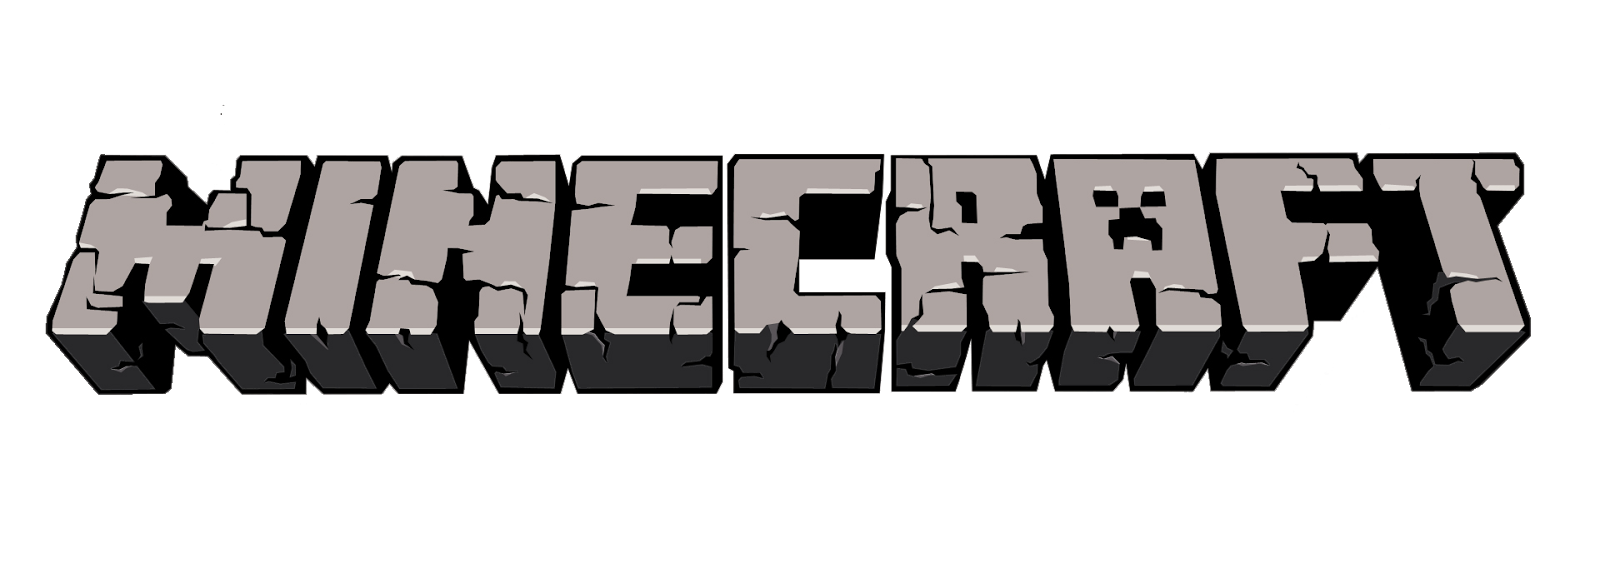 free download minecraft pe 1.8.0